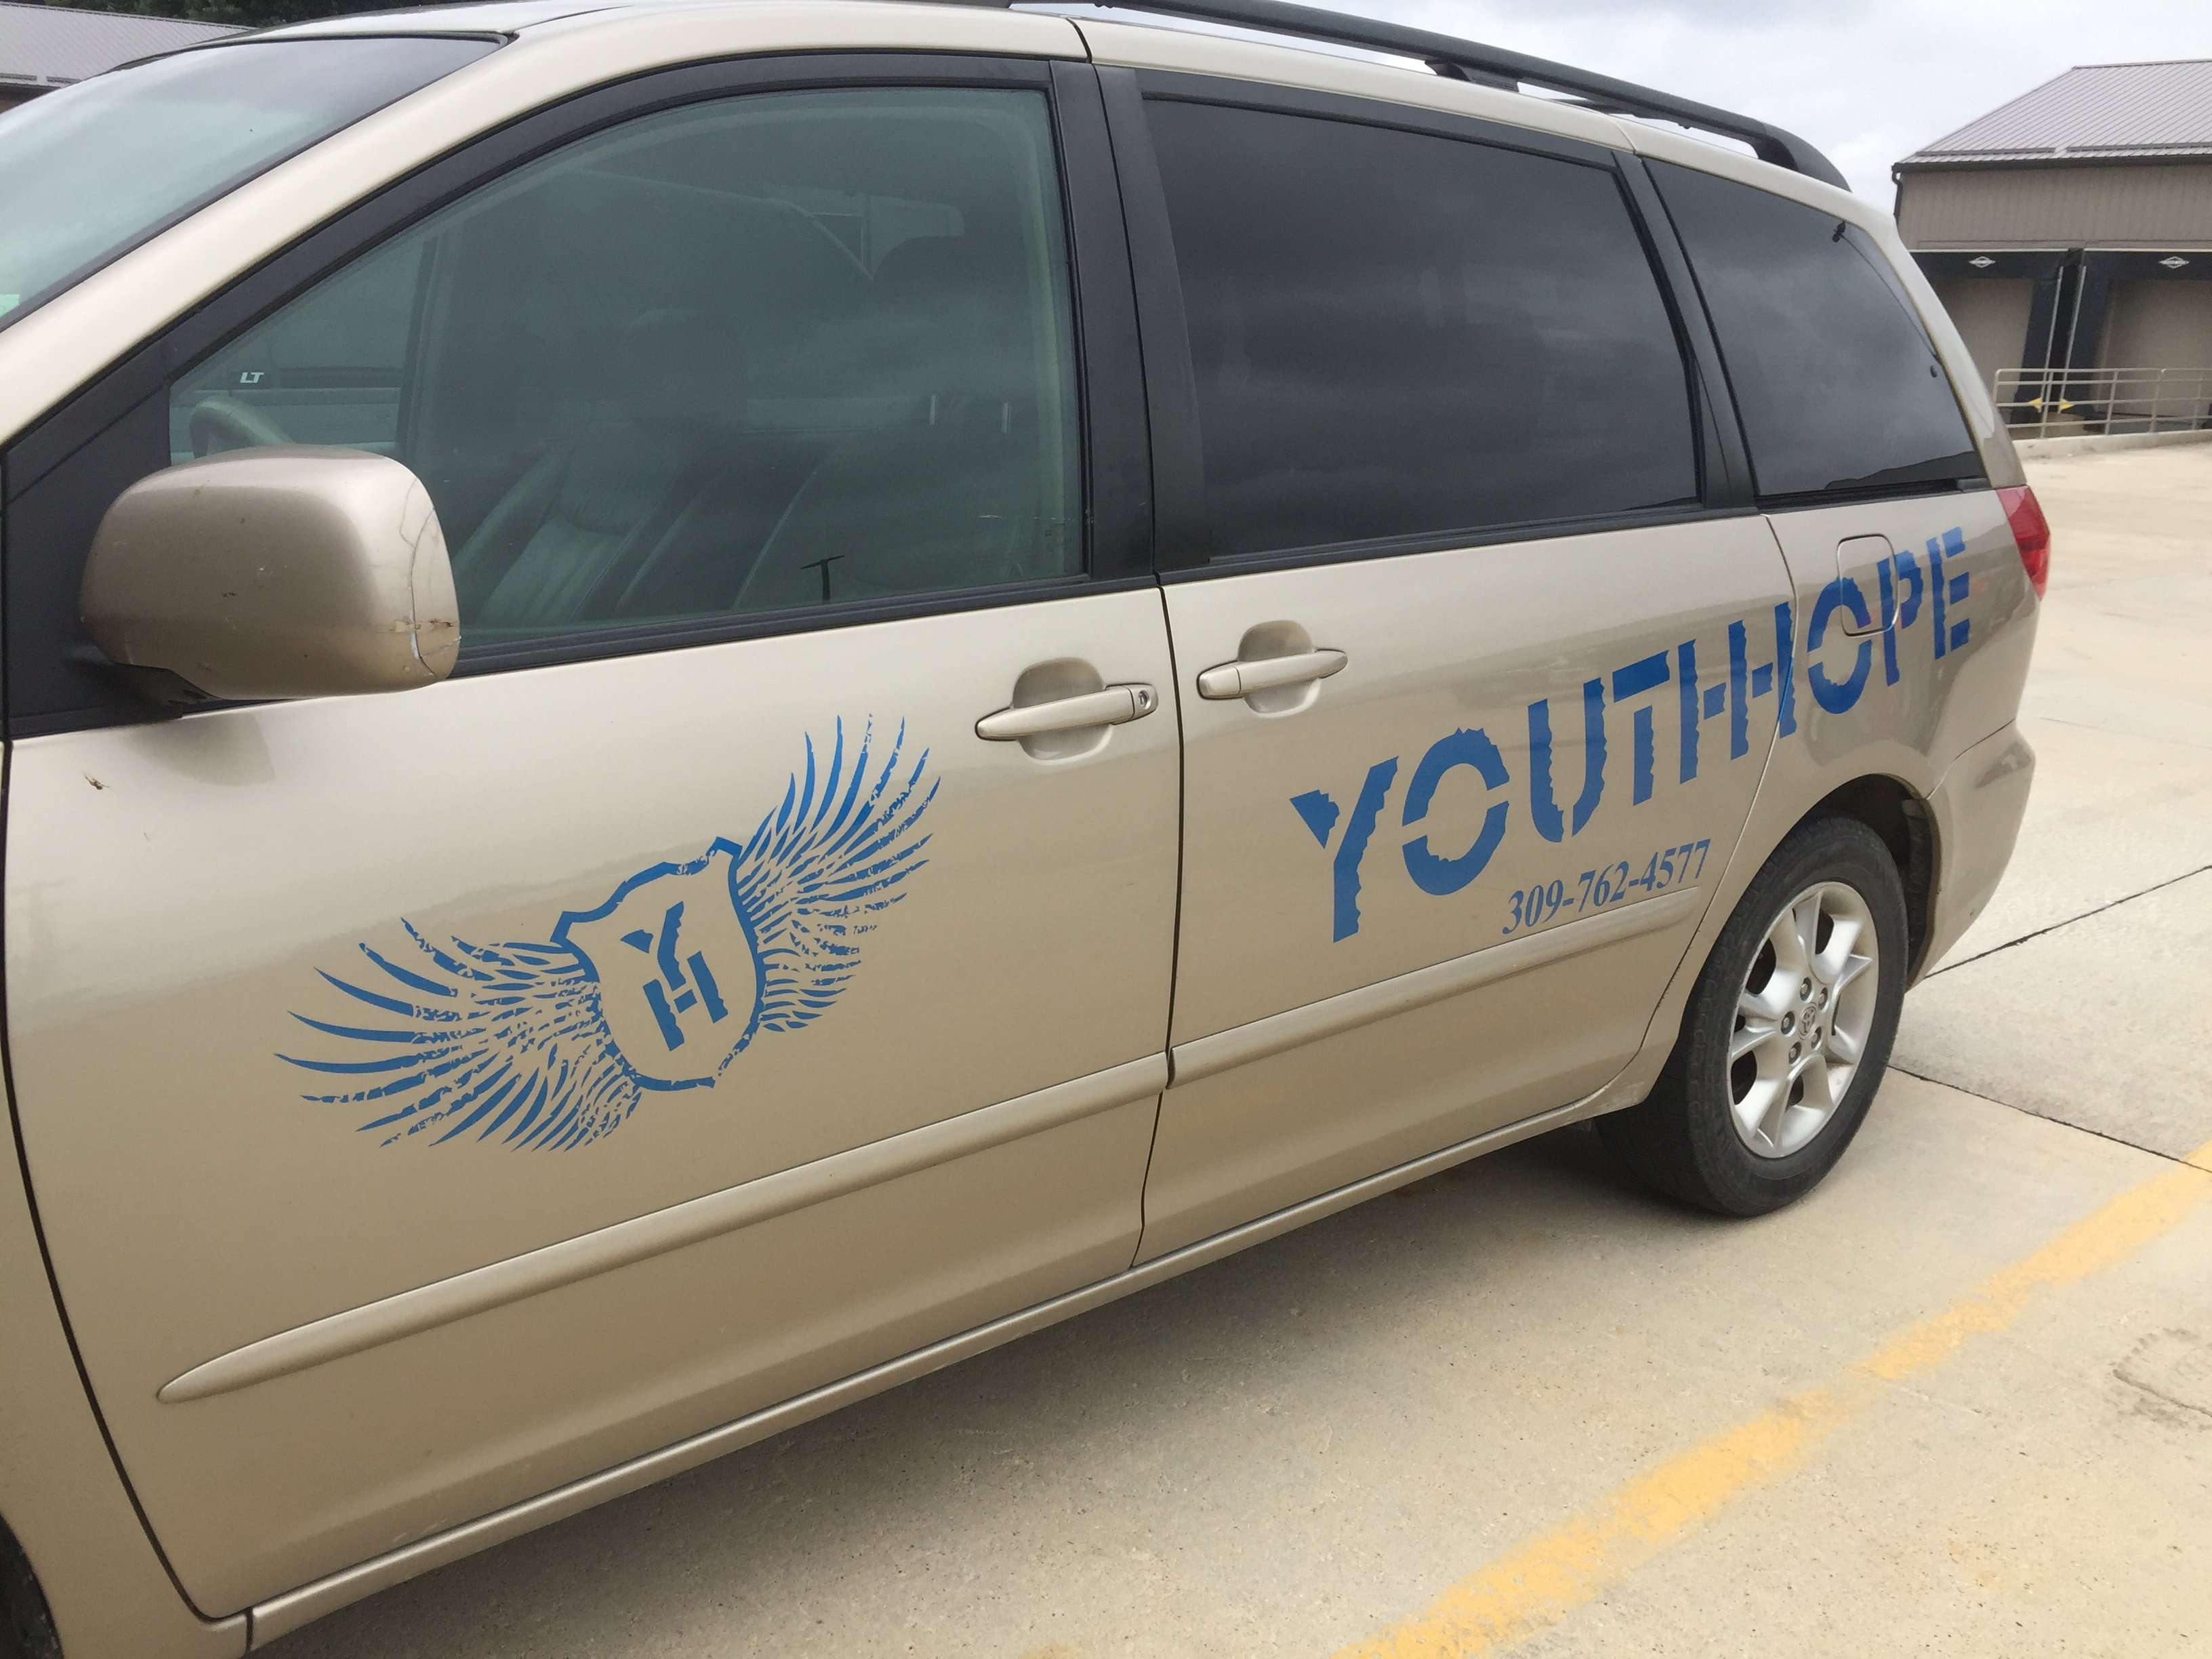 Vehicle Graphics and Lettering for YouthHope in Moline, Illinois